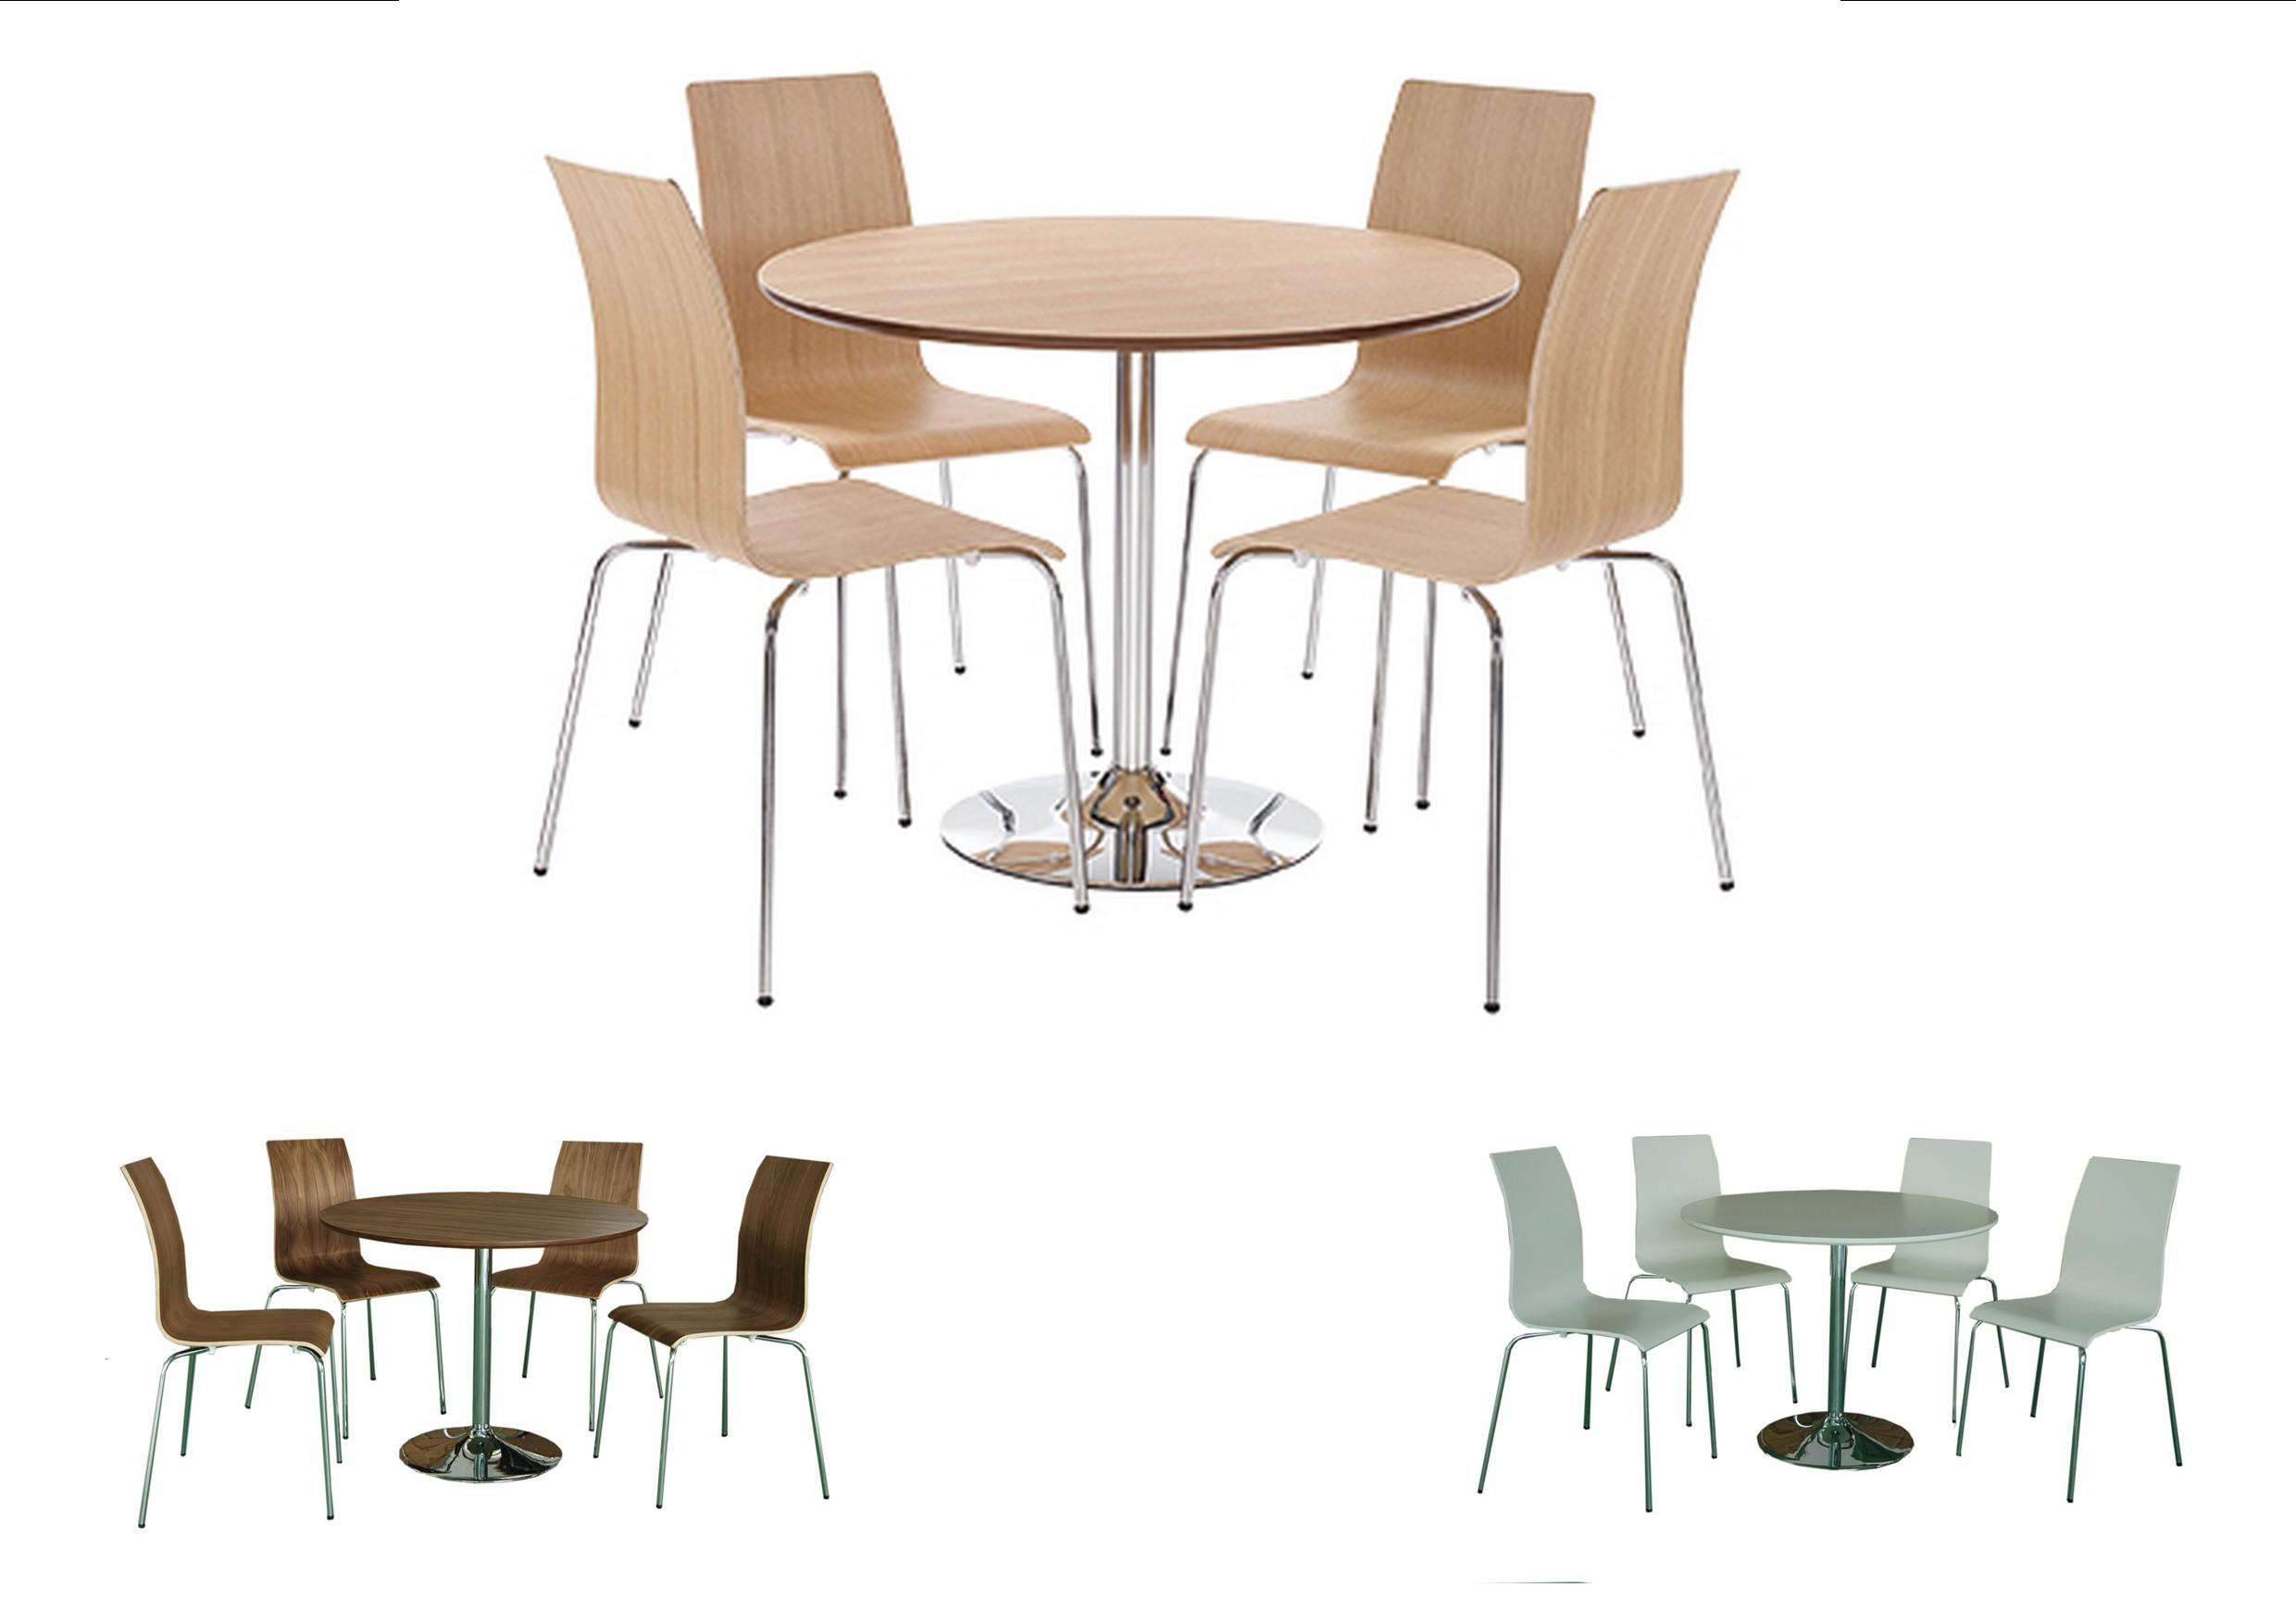 Soho Round Dining Table and 4 Chairs - Walnut, Oak, White ...